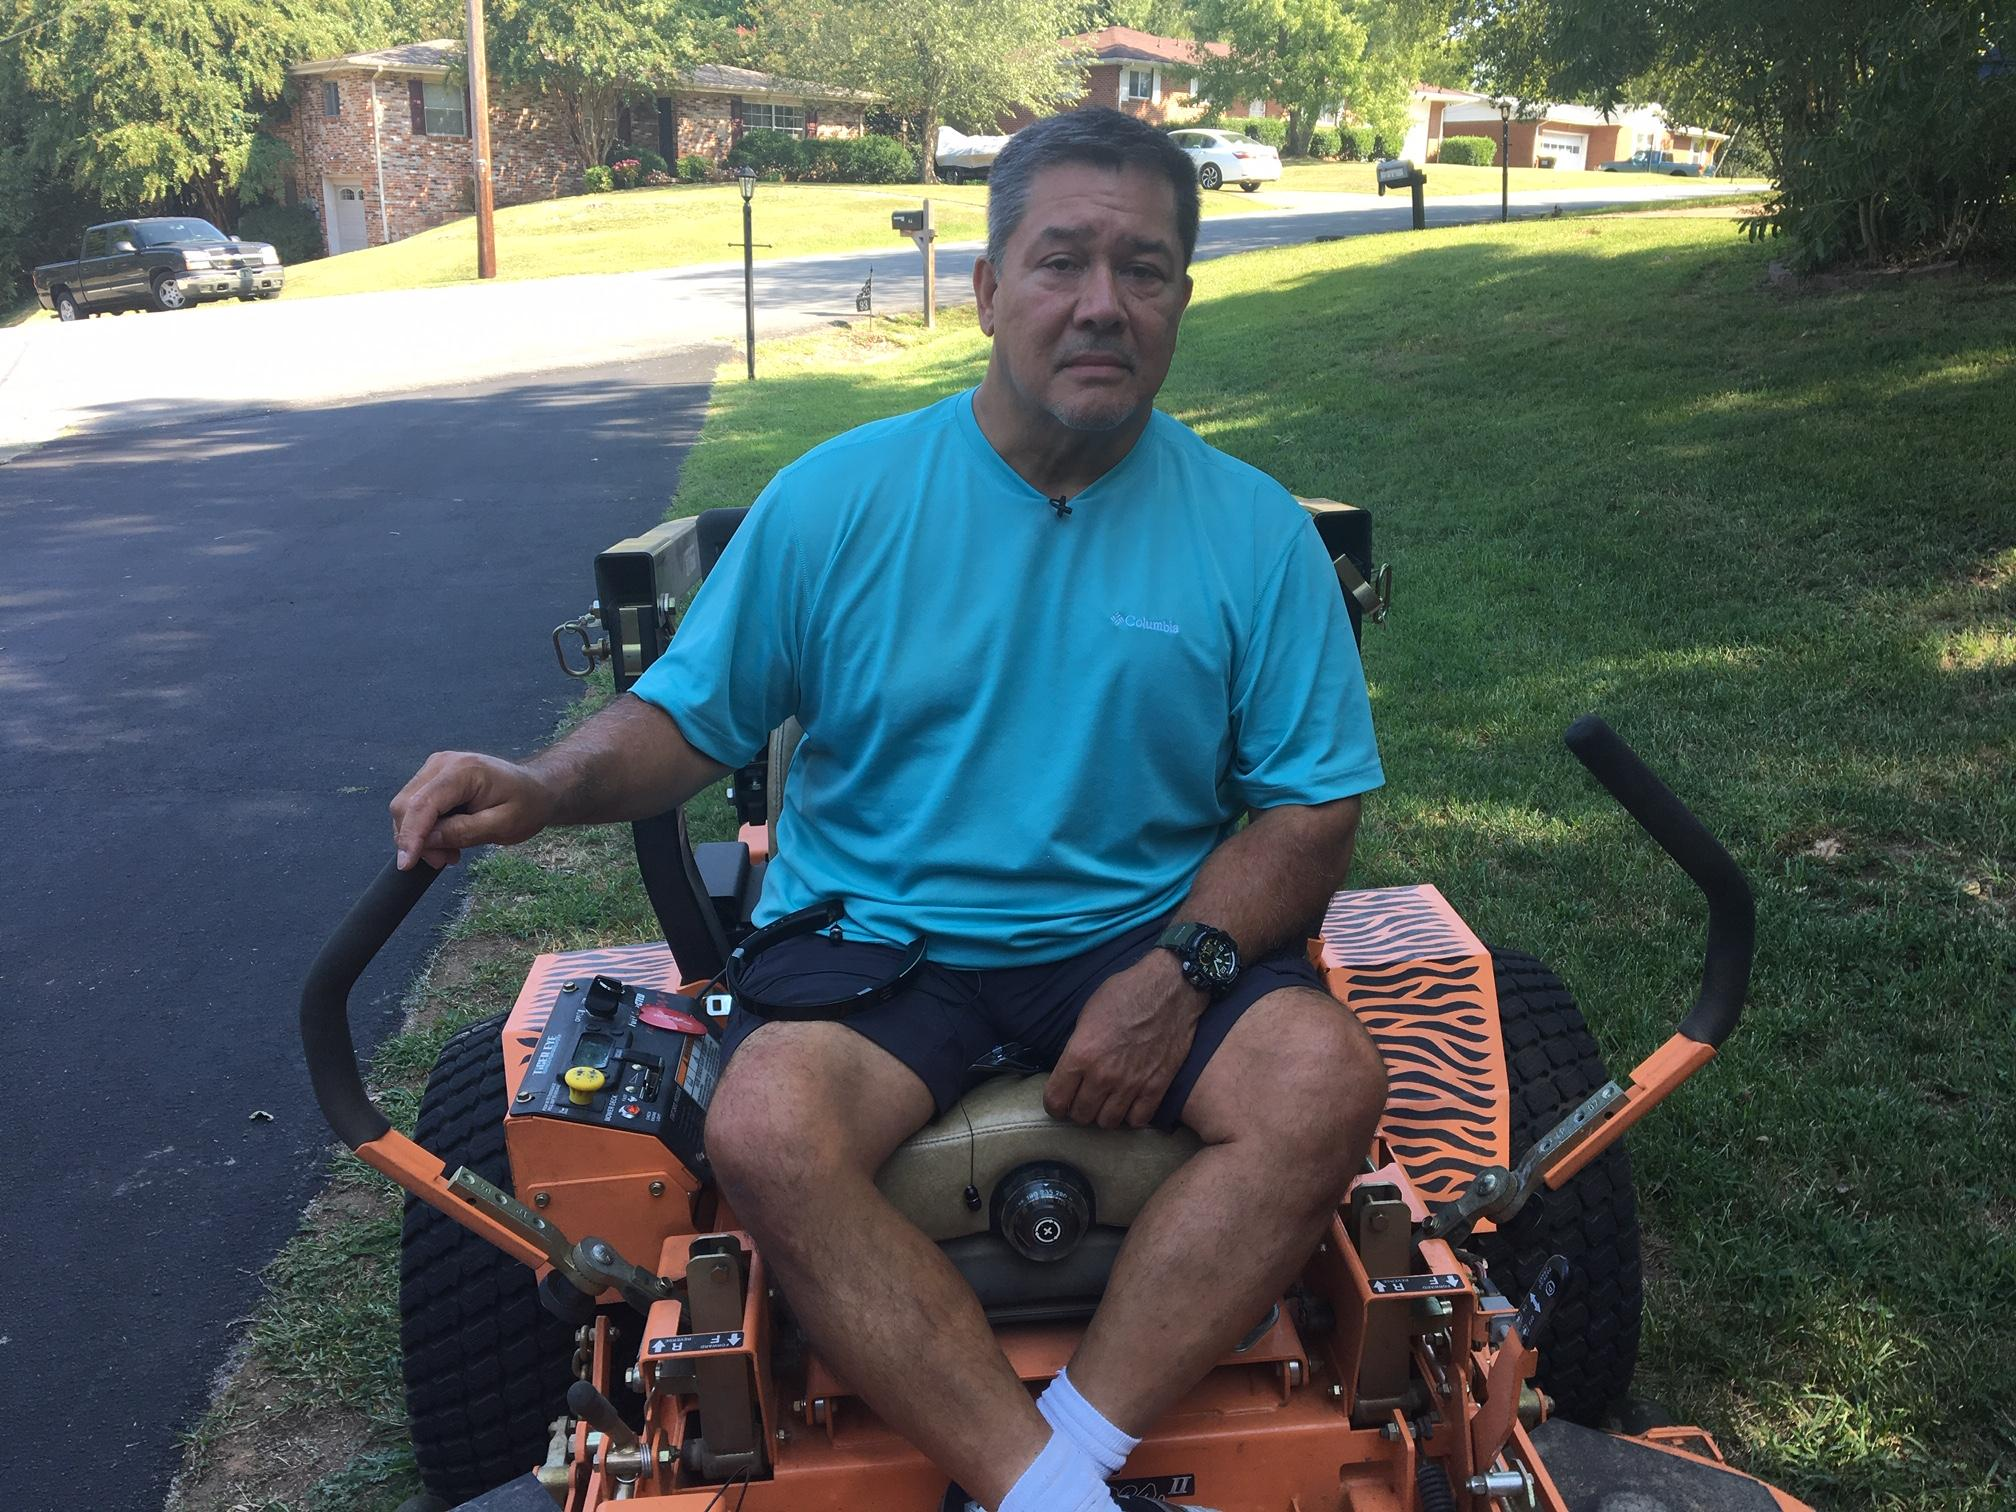 Chris Hays says when he found out his friend's cancer diagnoses, he fired up his lawnmower and went to work. (Image: WTVC)